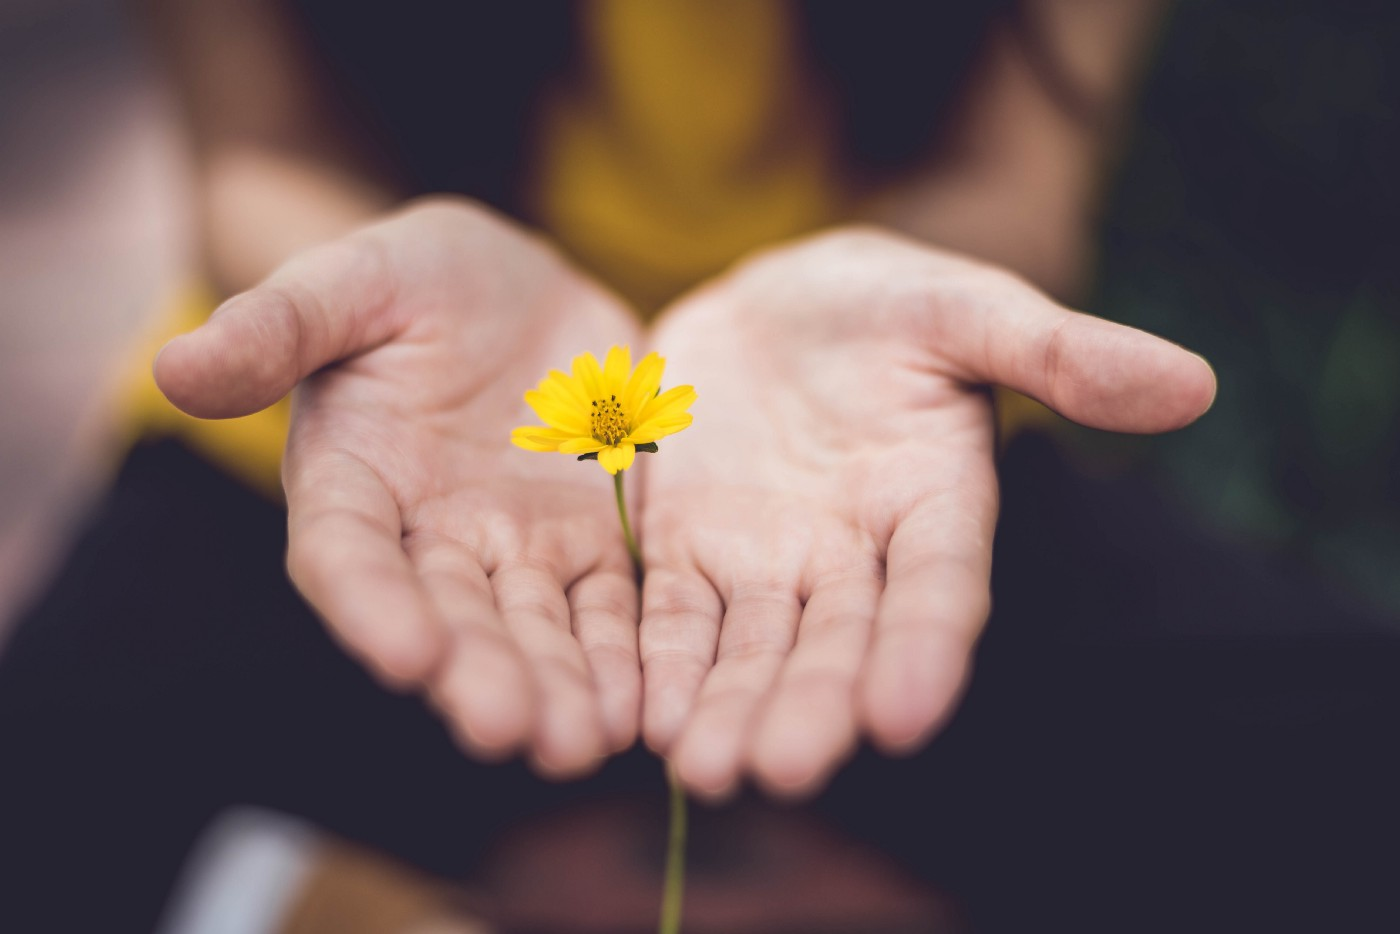 tiny yellow flower held in open hands